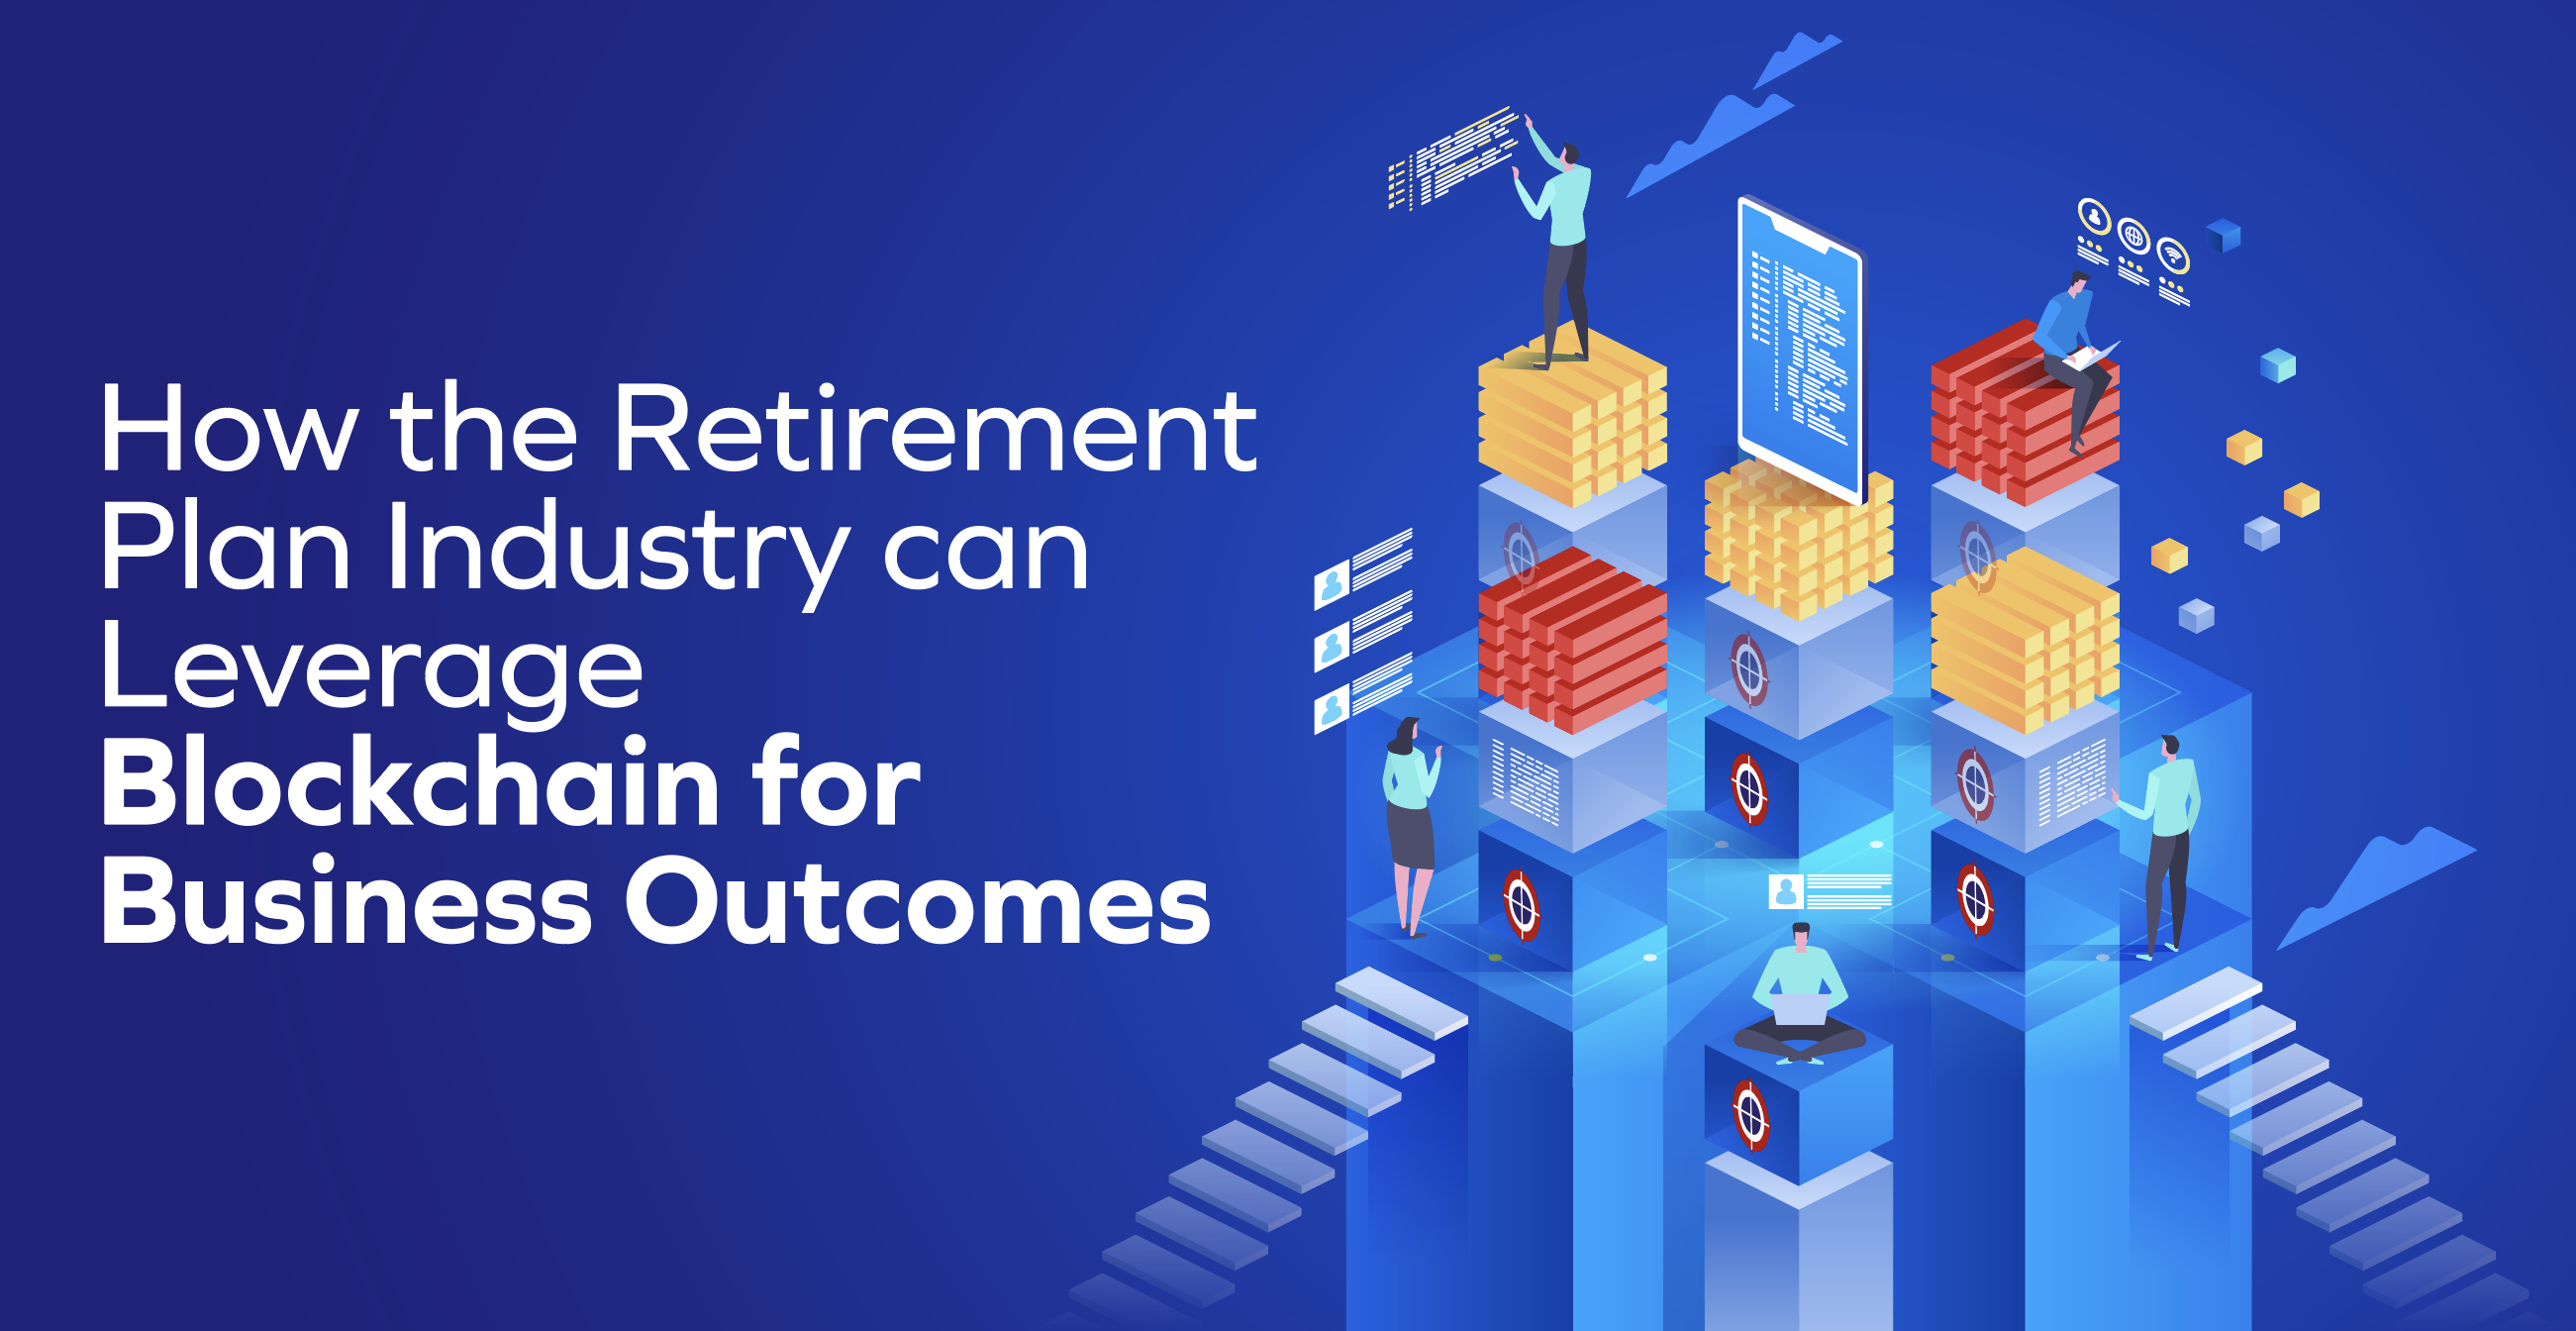 How the Retirement Plan Industry can Leverage Blockchain?